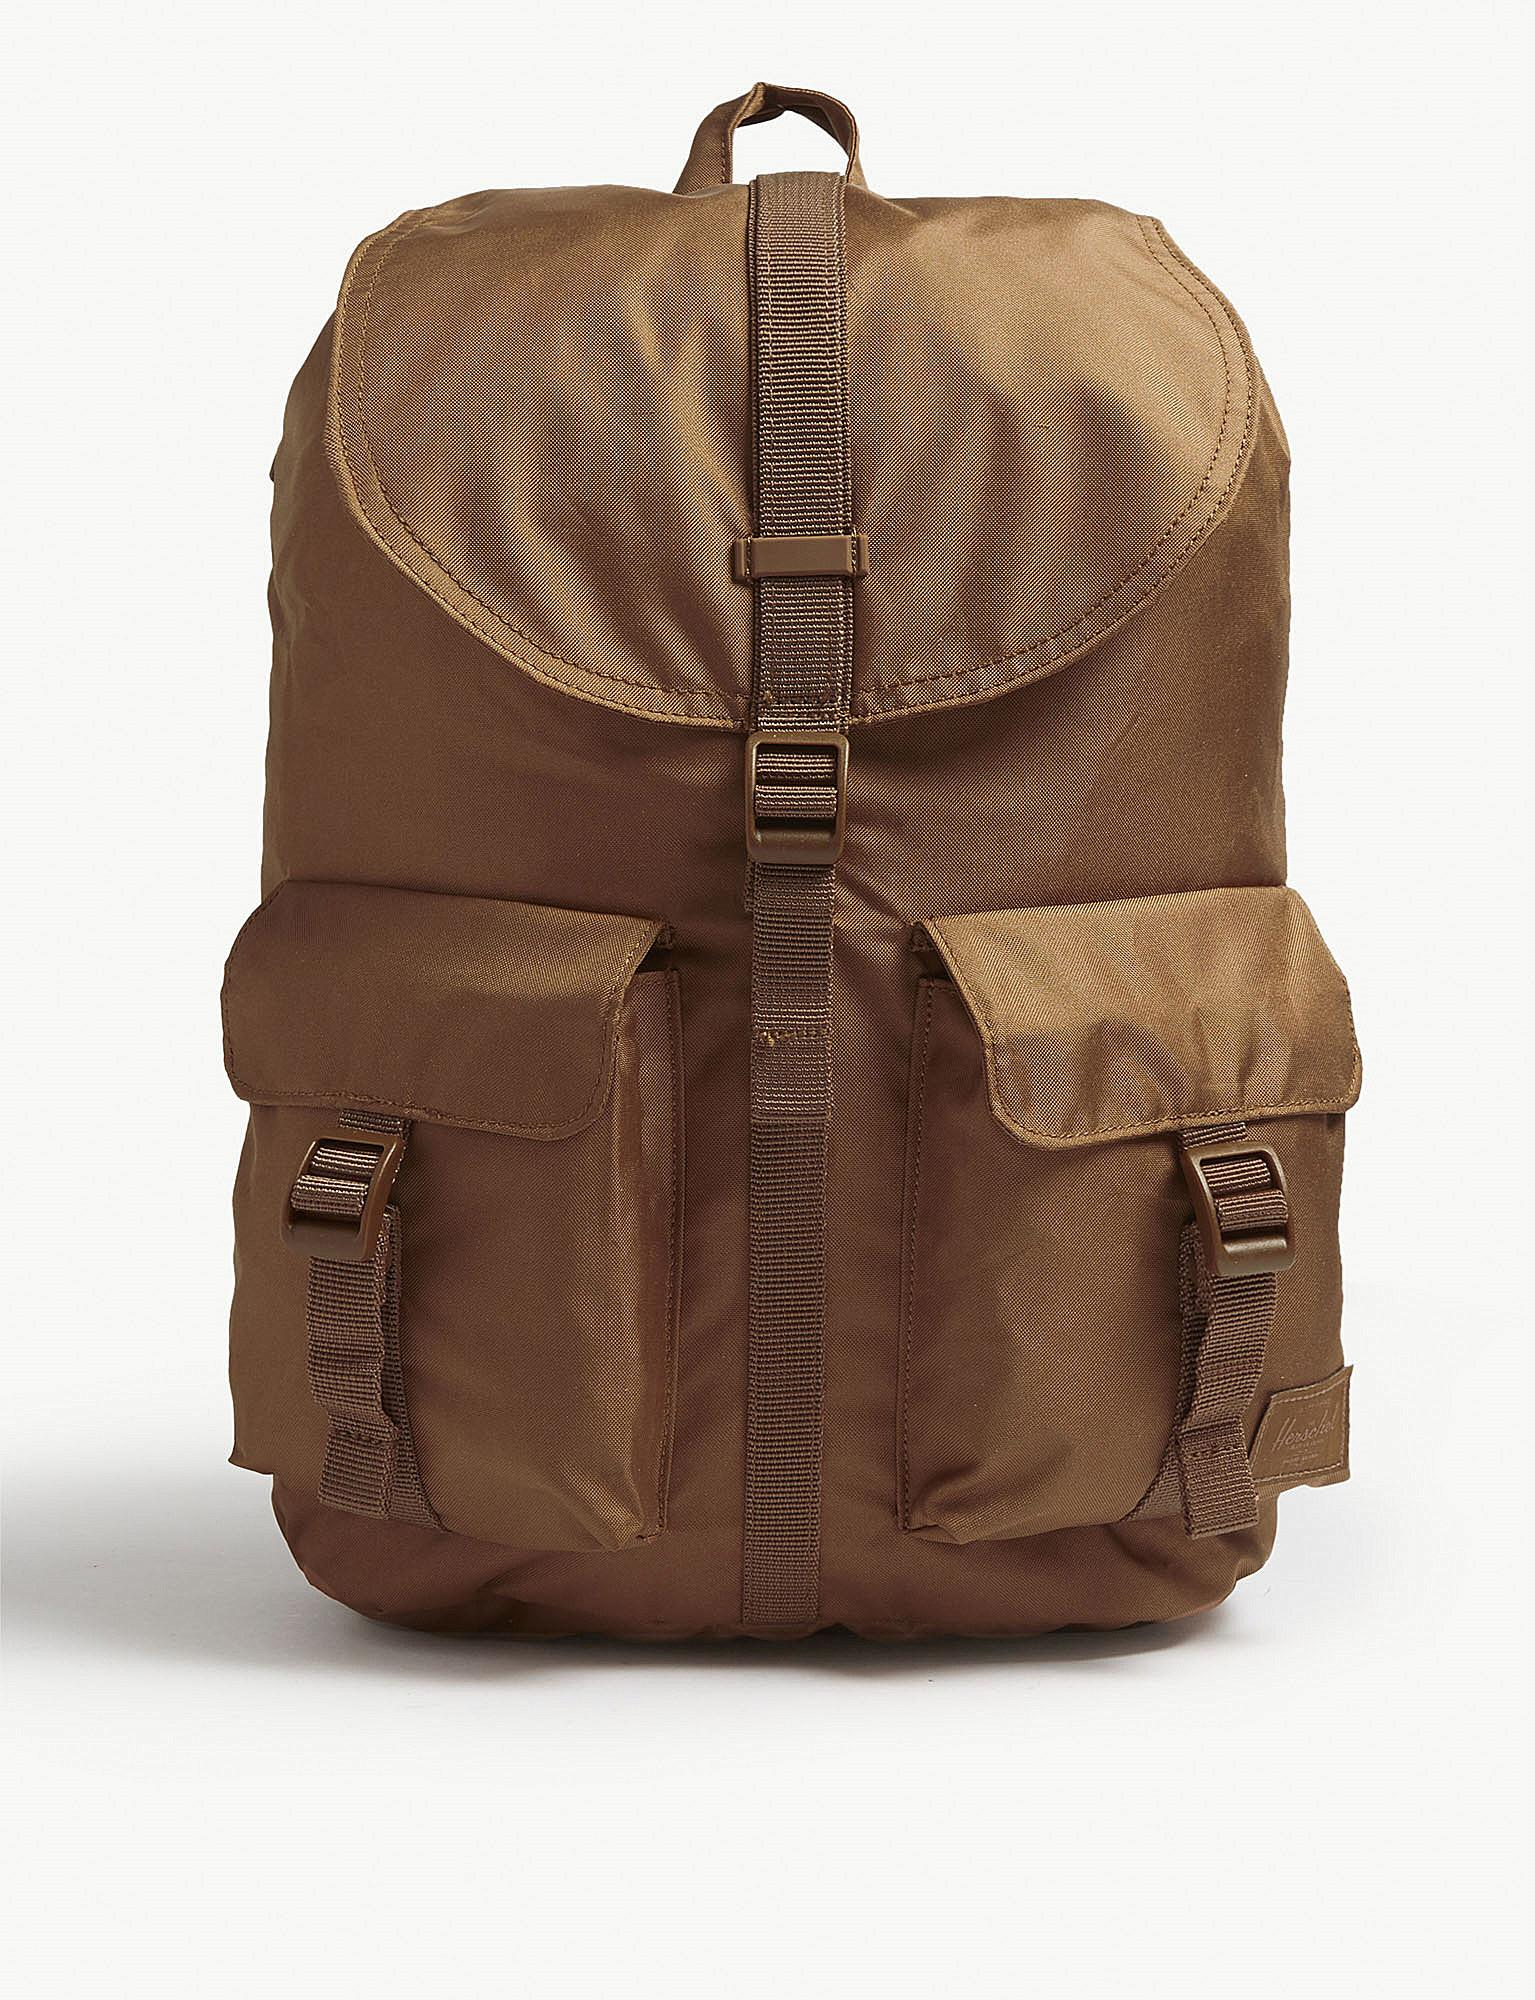 aaba9bde1cde Lyst - Herschel Supply Co. Dawson Light Backpack in Brown for Men